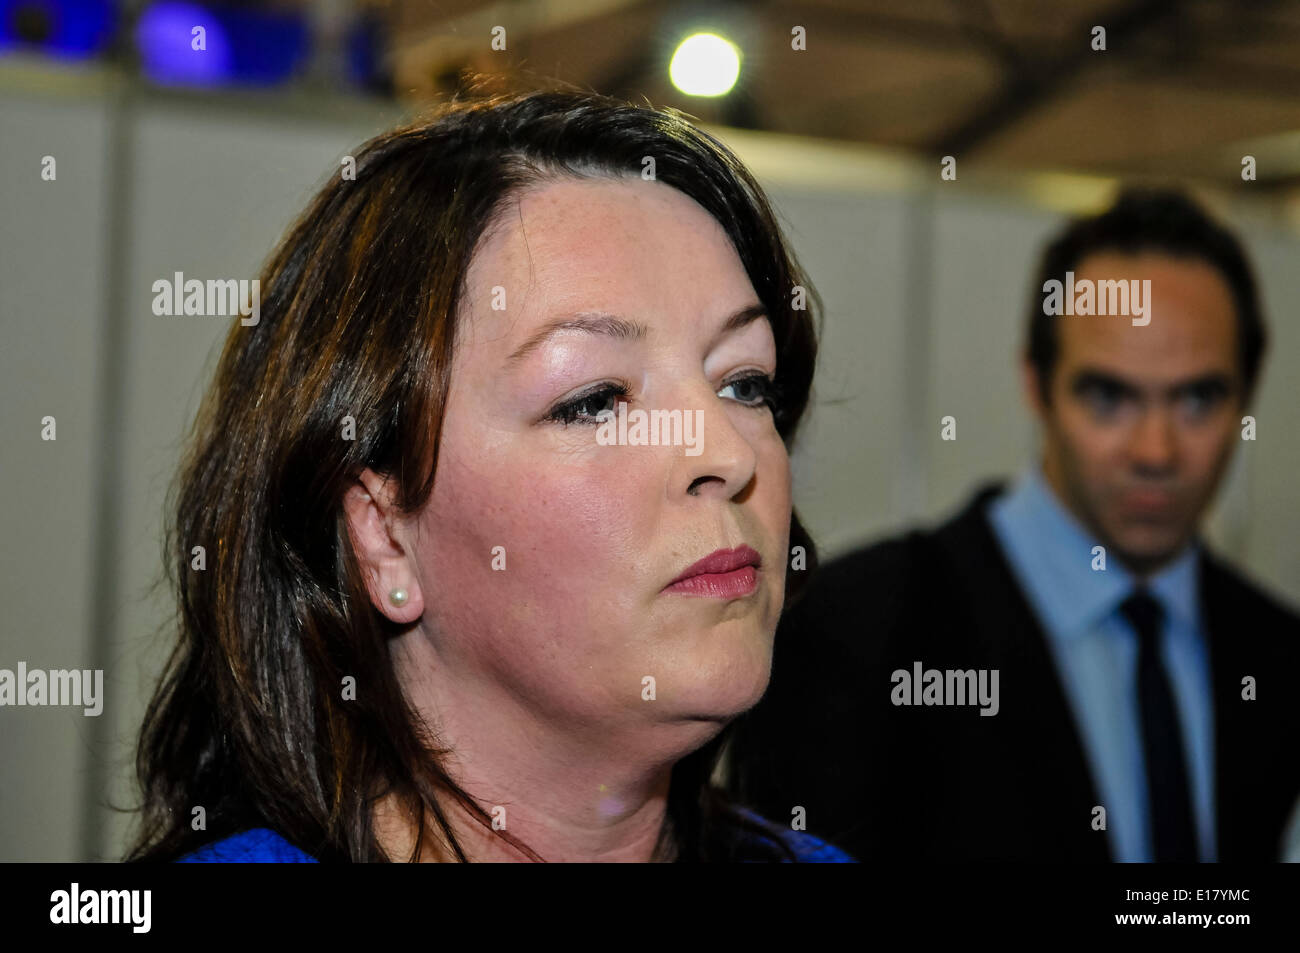 Belfast, Northern Ireland. 26 May 2014 - Tina McKenzie arrives at the European Election counting centre amid serious problems within her party, NI21, and after she resigns. Credit:  Stephen Barnes/Alamy Live News - Stock Image